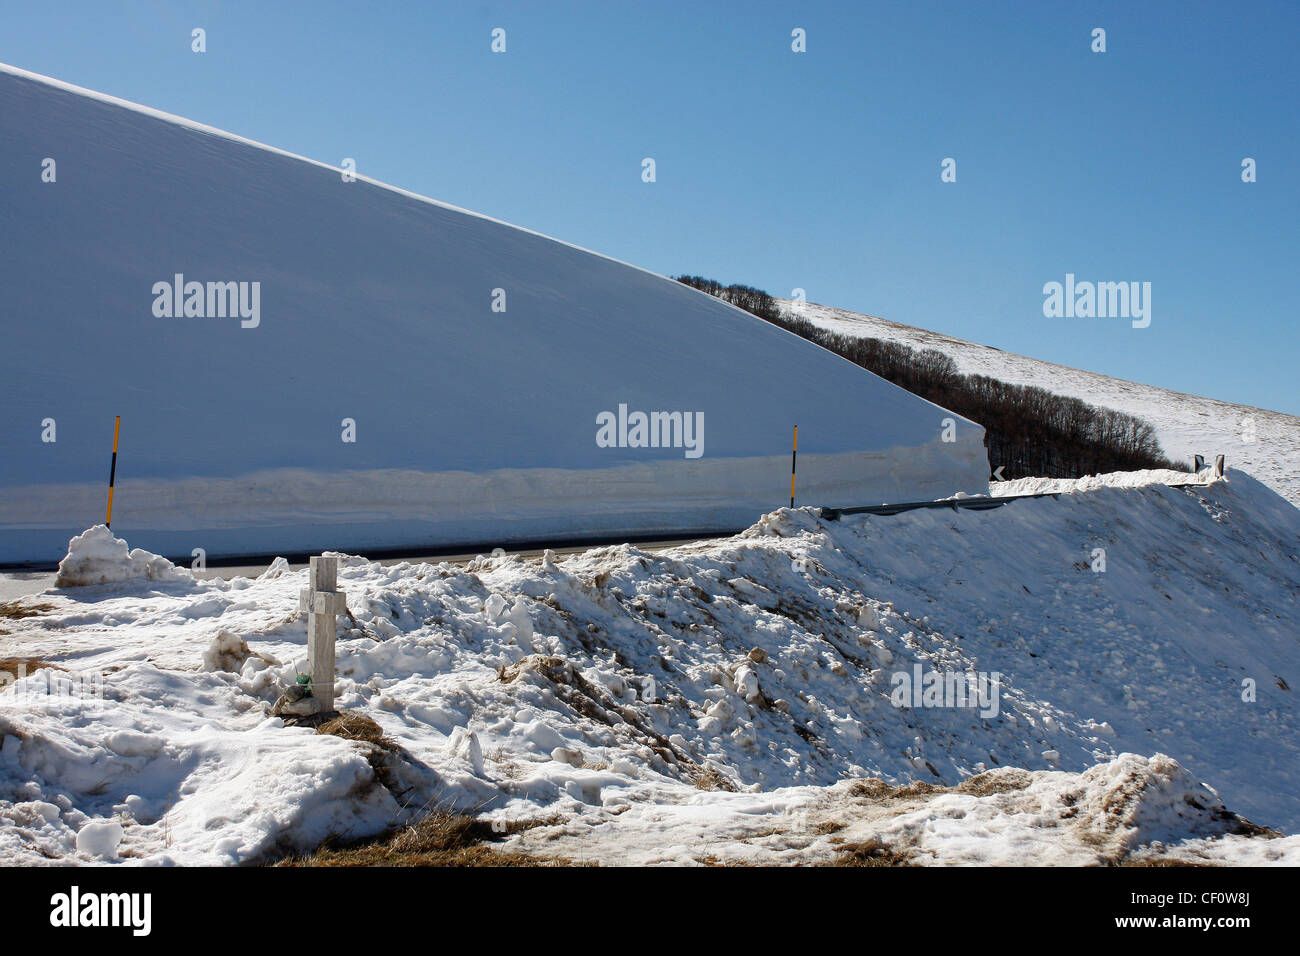 Mountain pass on road to Castelluccio hill town  in Le Marche,Italy after a heavy snow fall,with a clear blue sky. - Stock Image